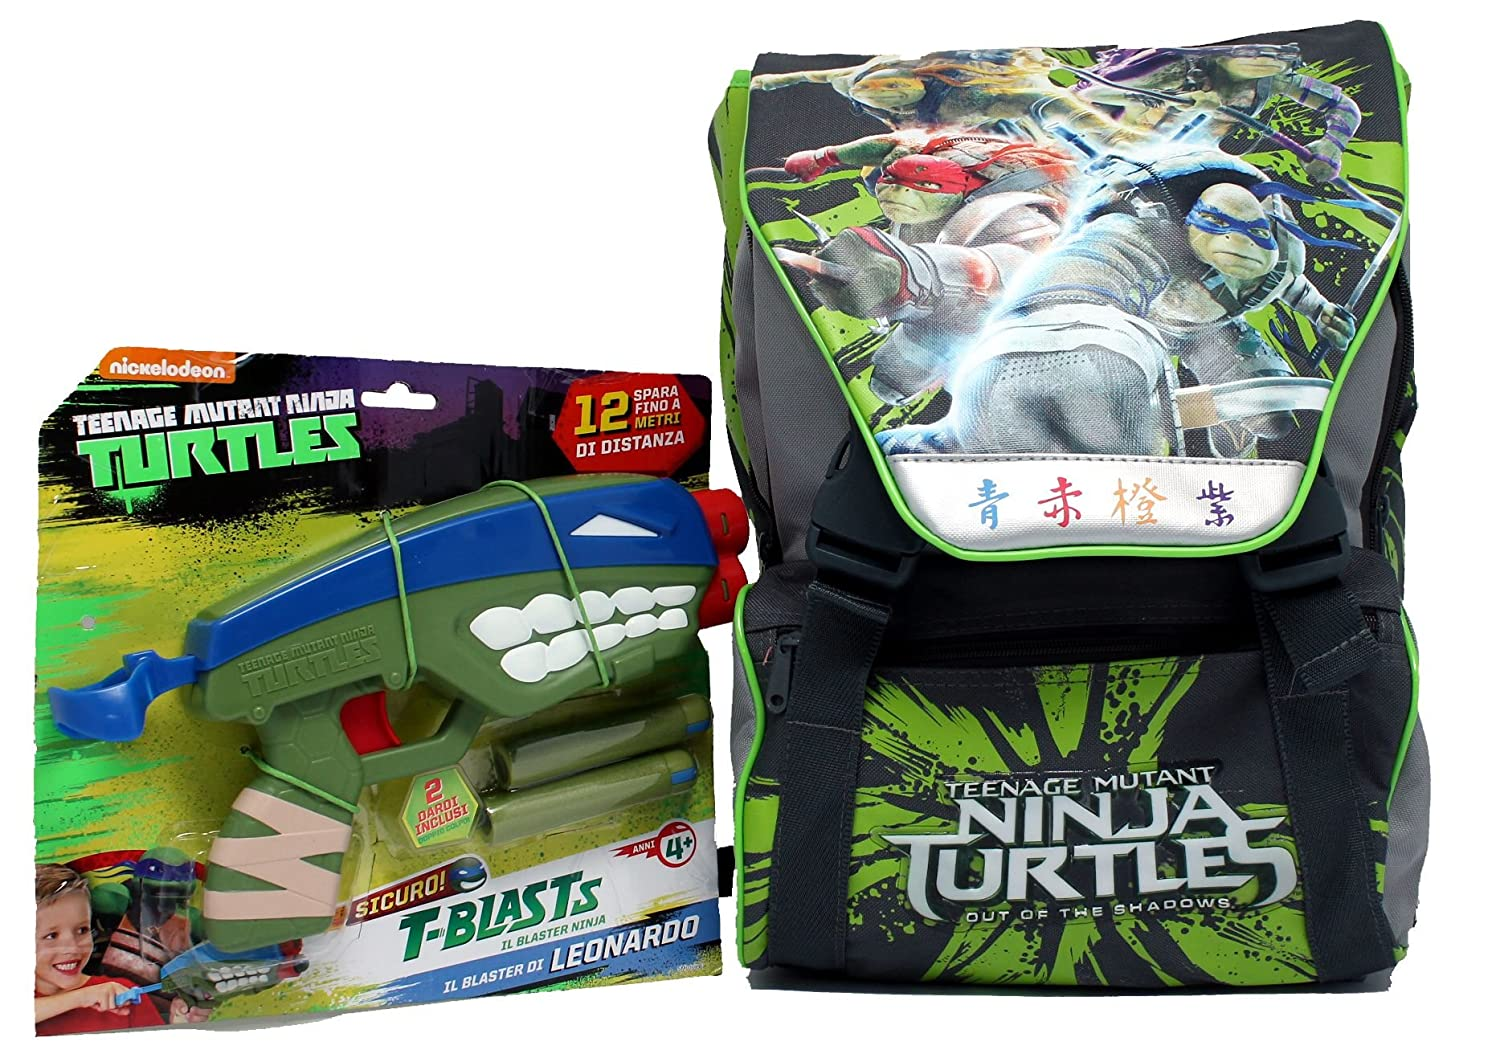 Zaino estensibile Medium Ninjs Tutles in tessuto poliestere ...